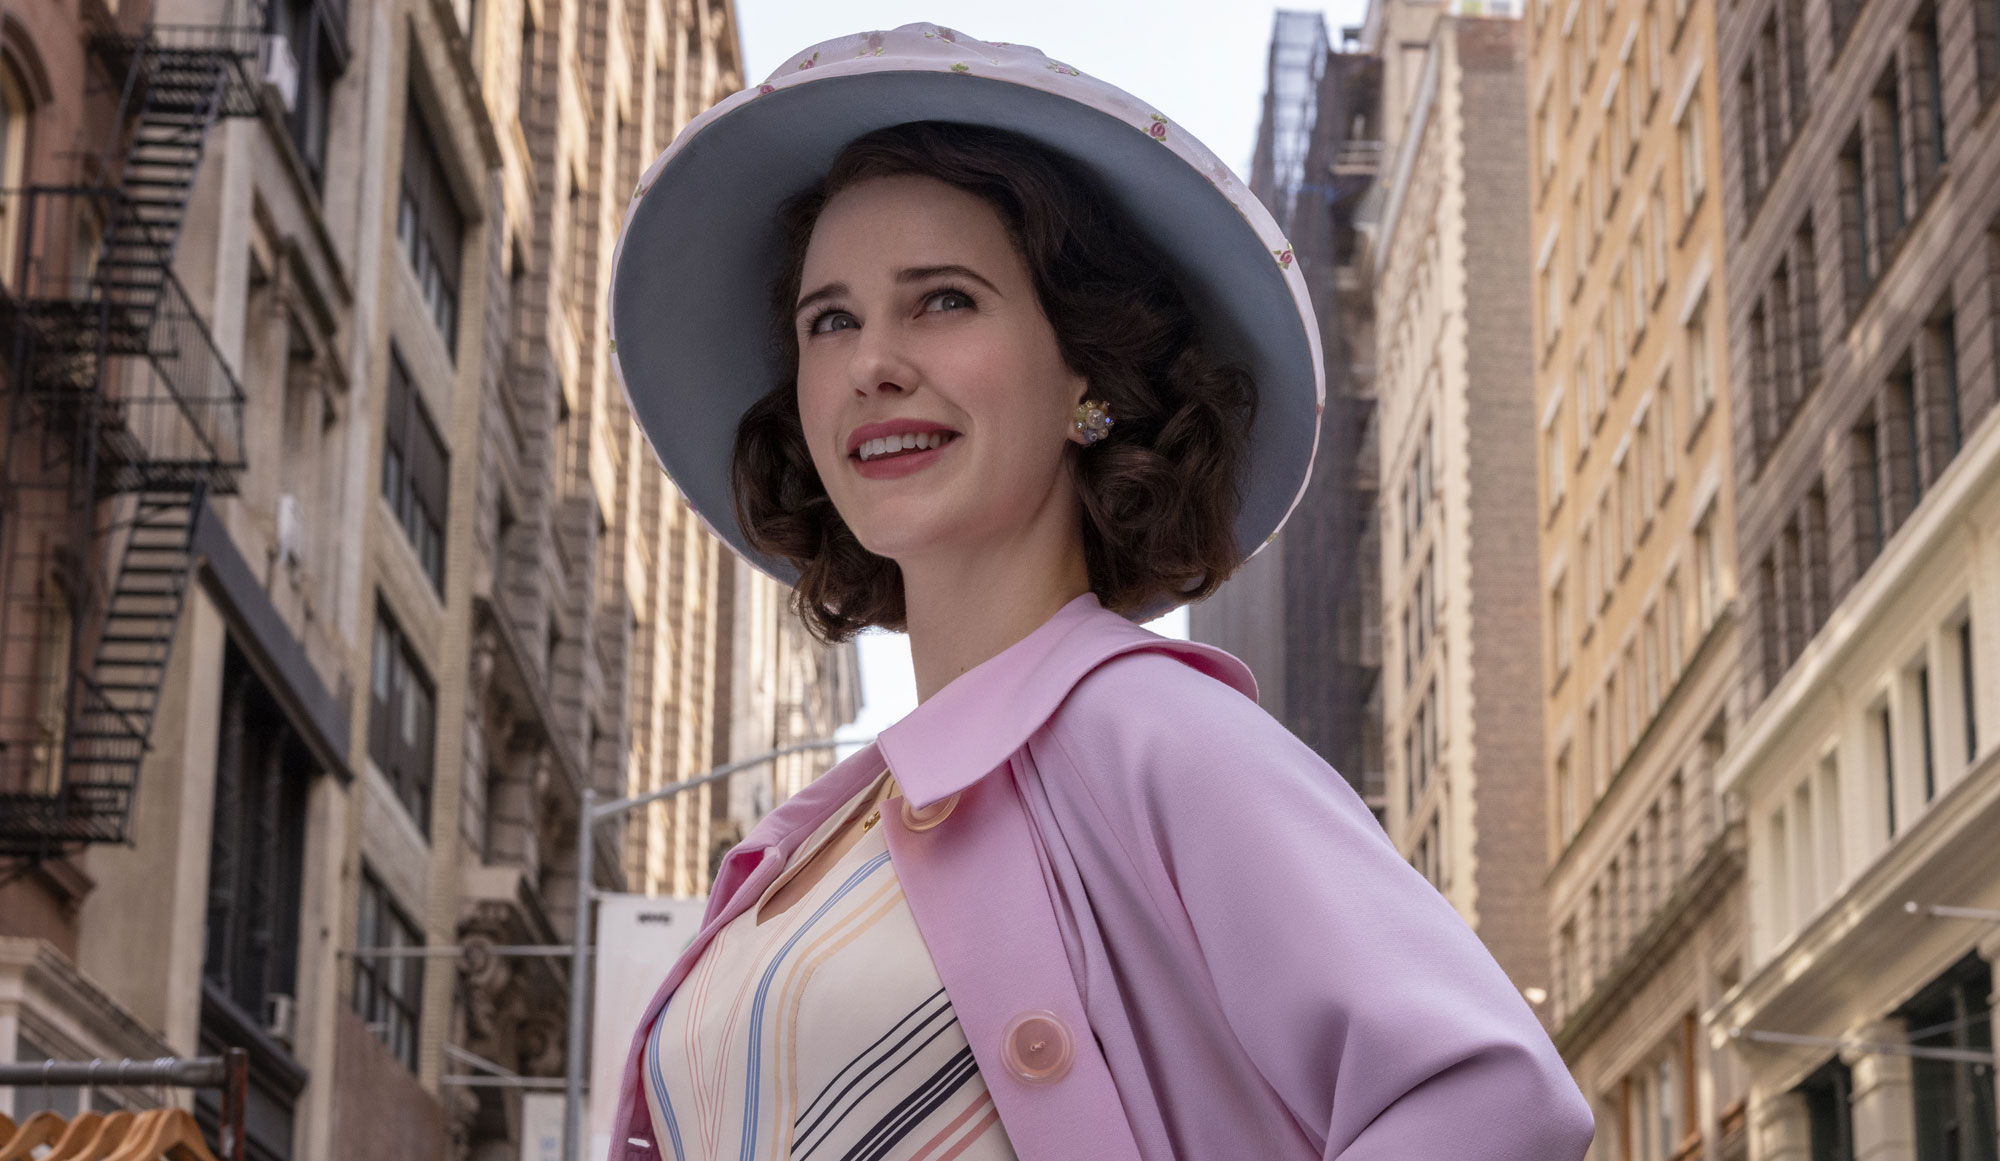 Emmy episode analysis: Rachel Brosnahan ('The Marvelous Mrs. Maisel') walks into the Apollo … and wins Best Actress again?